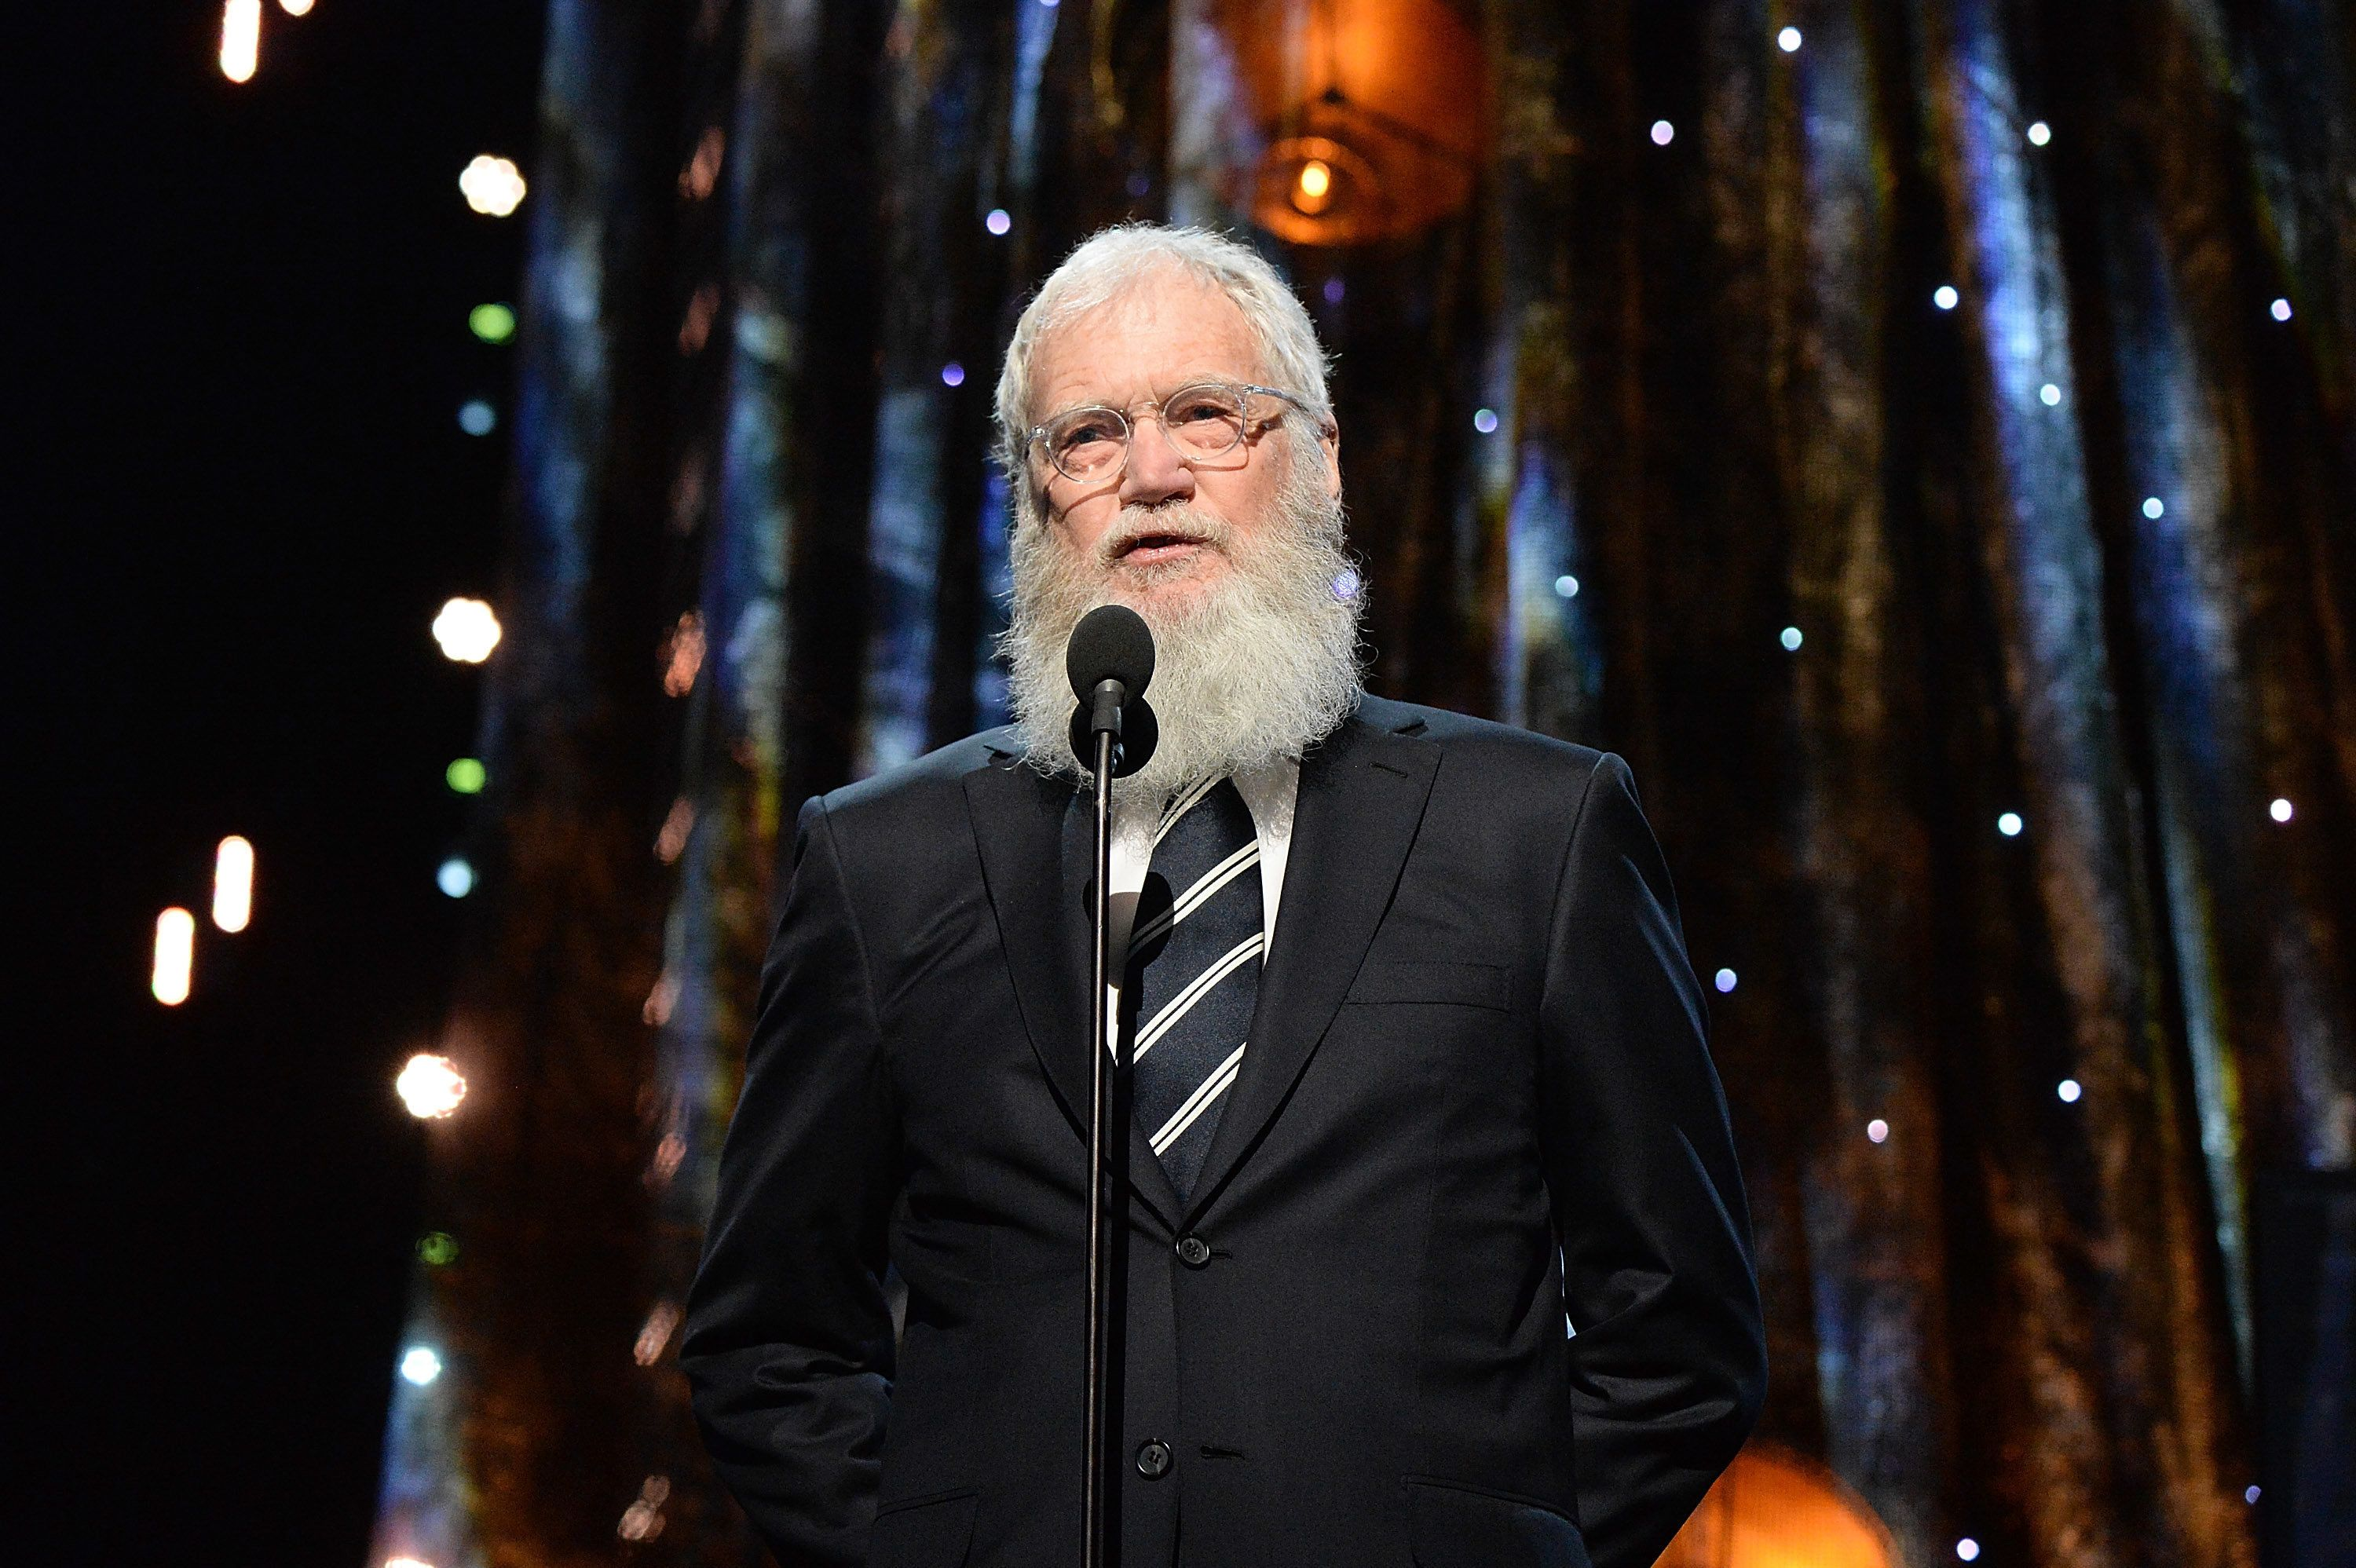 NEW YORK, NY - APRIL 07:  David Letterman speaks onstage during the 32nd Annual Rock & Roll Hall Of Fame Induction Ceremony at Barclays Center on April 7, 2017 in New York City. The broadcast will air on Saturday, April 29, 2017 at 8:00 PM ET/PT on HBO.  (Photo by Kevin Mazur/WireImage for Rock and Roll Hall of Fame)